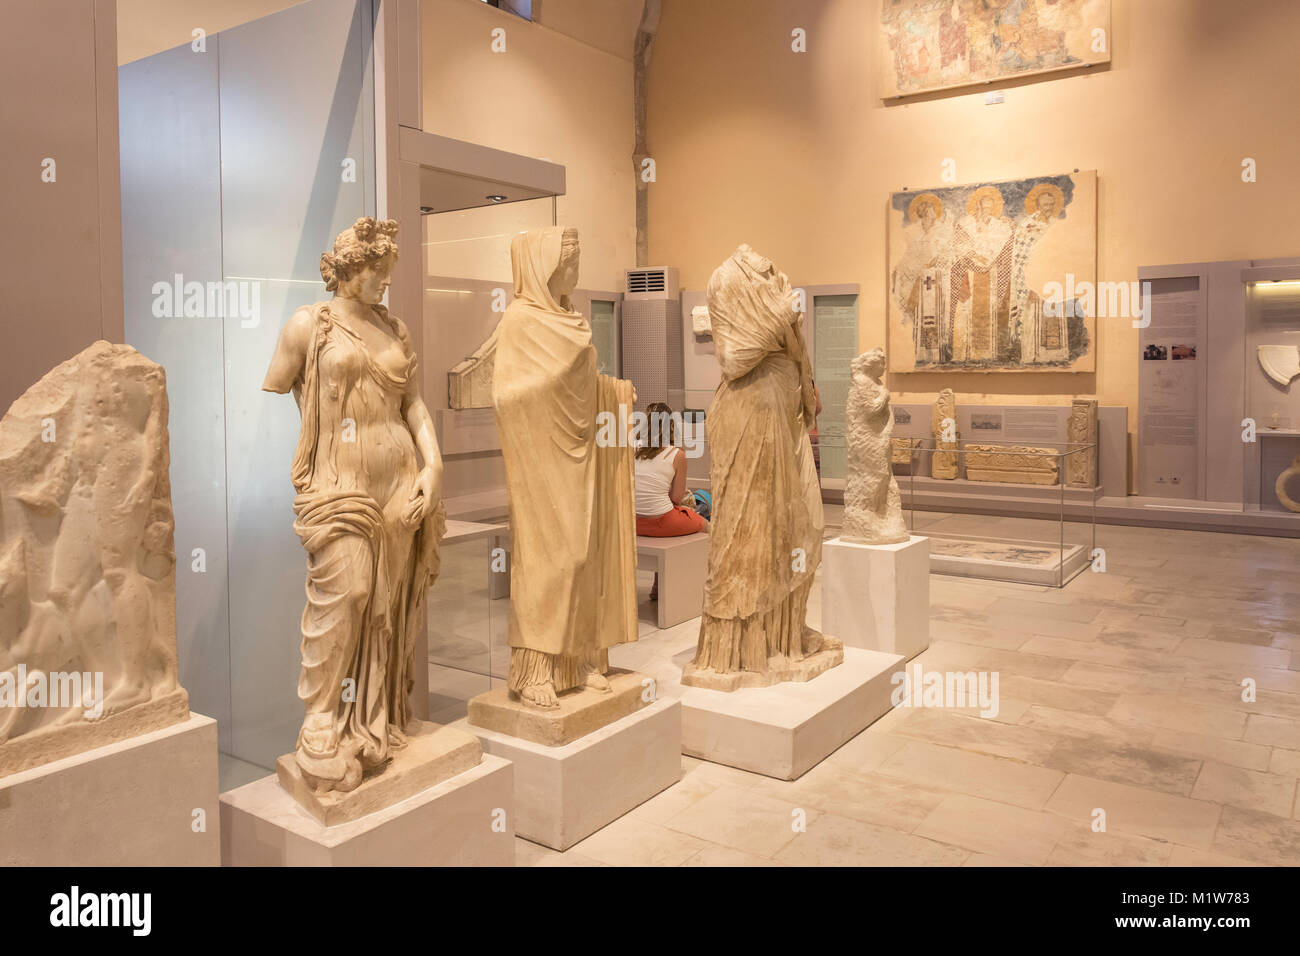 Ancient marble statues and frescoes inside Archaelogical Museum of Rethymno, Old Town, Rethymnon (Rethimno), Crete - Stock Image